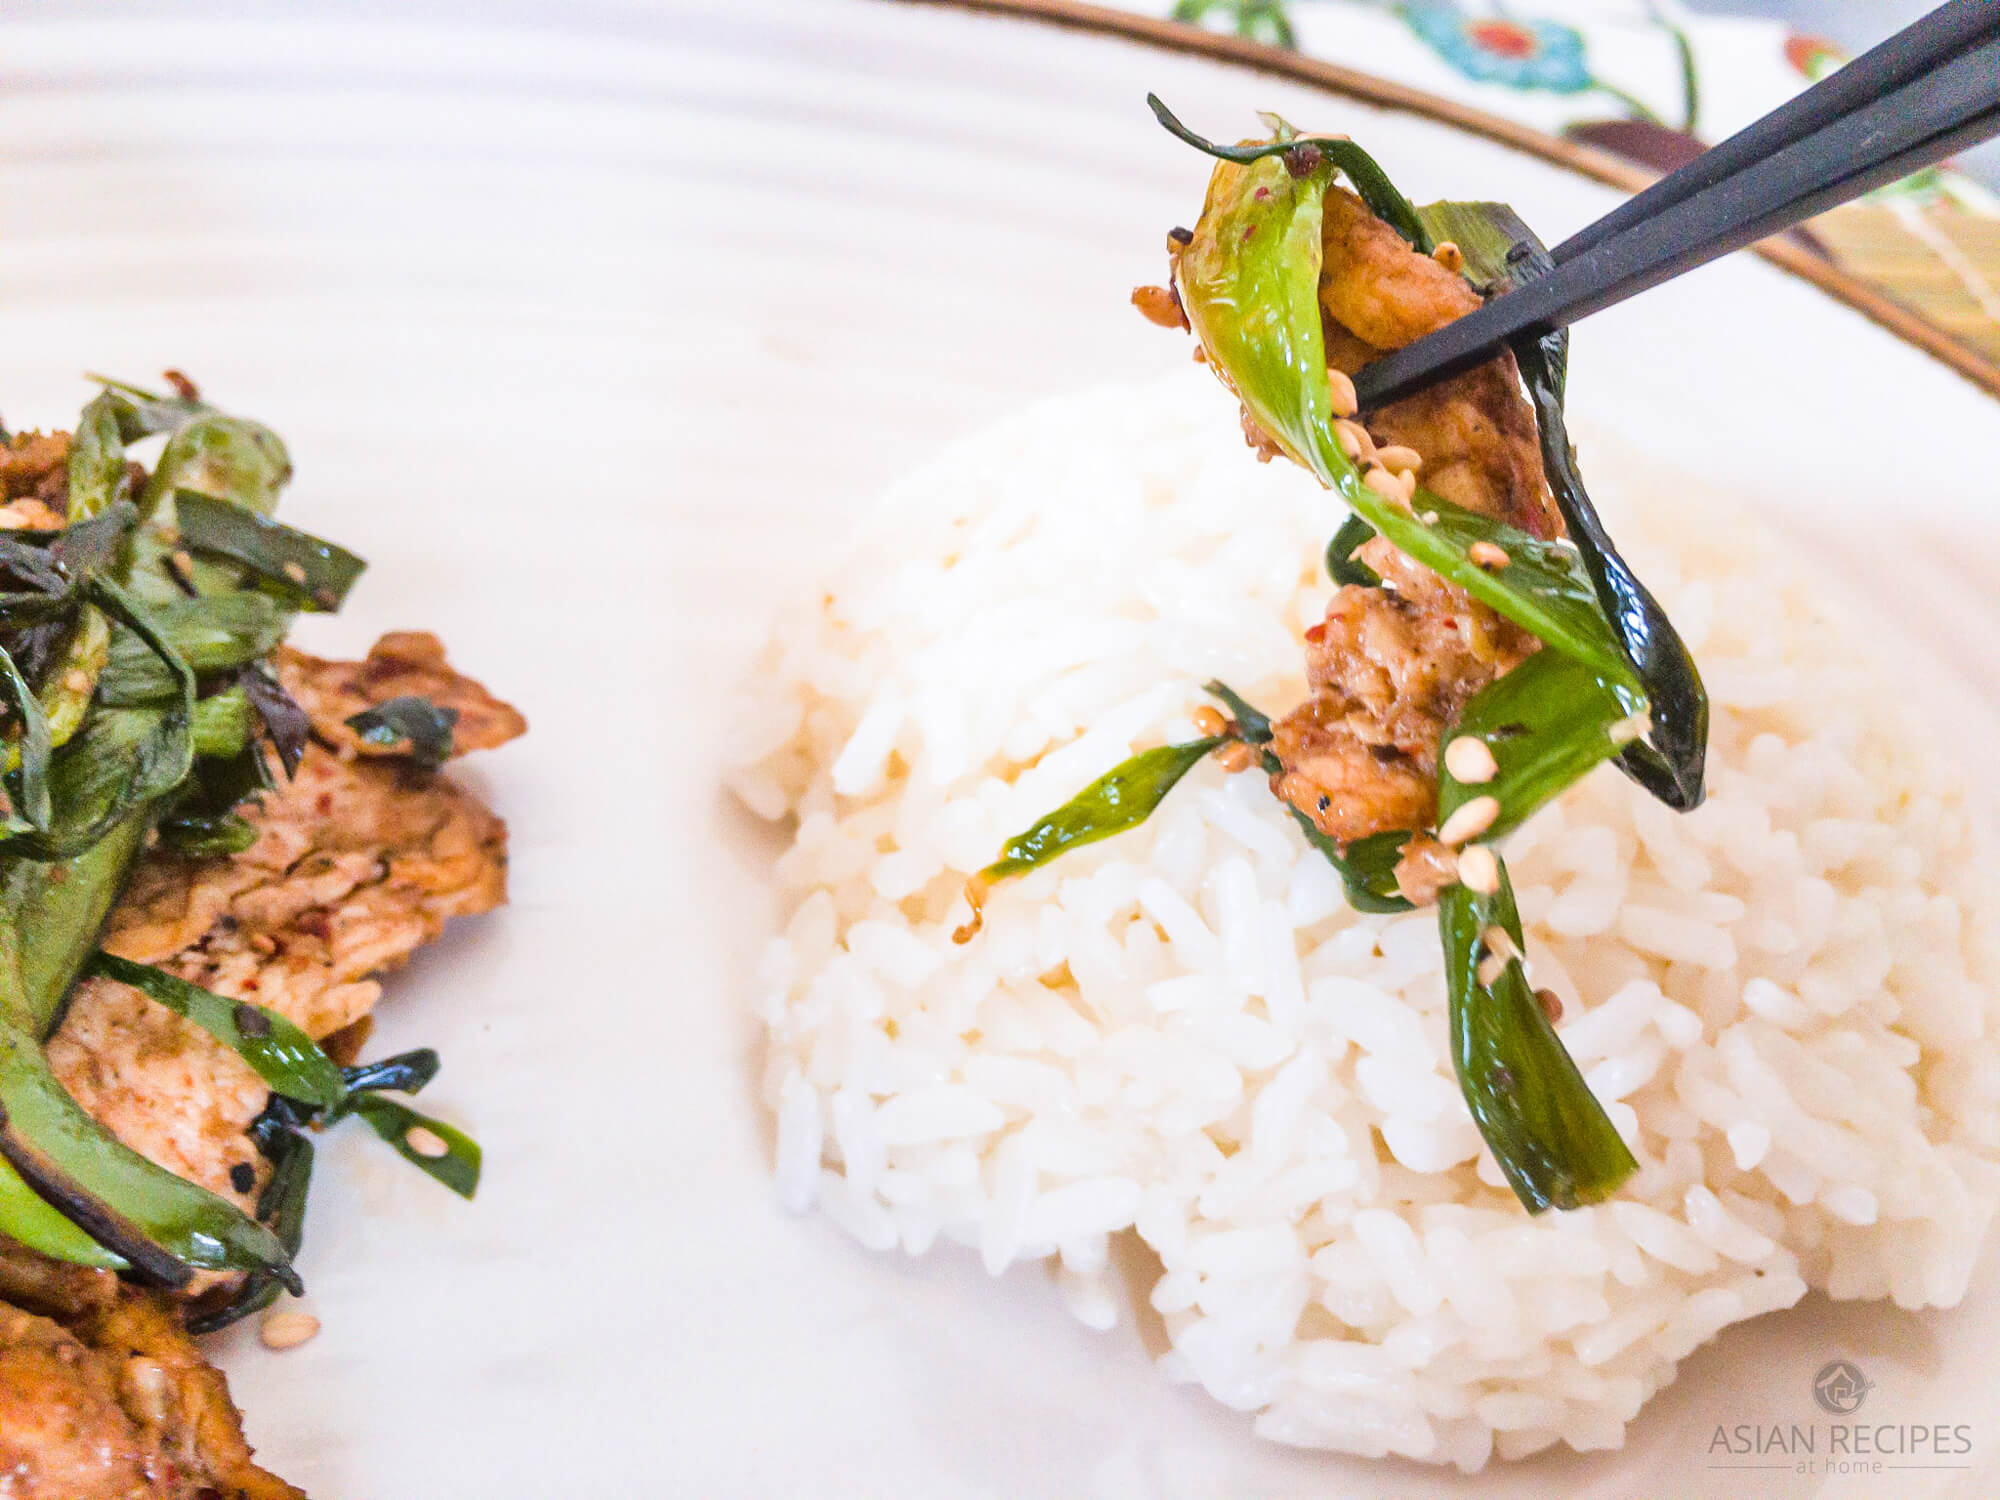 Juicy and thinly sliced chicken thighs are stir-fried in a homemade spicy kimchi sauce pictured on a white plate with steamed rice.